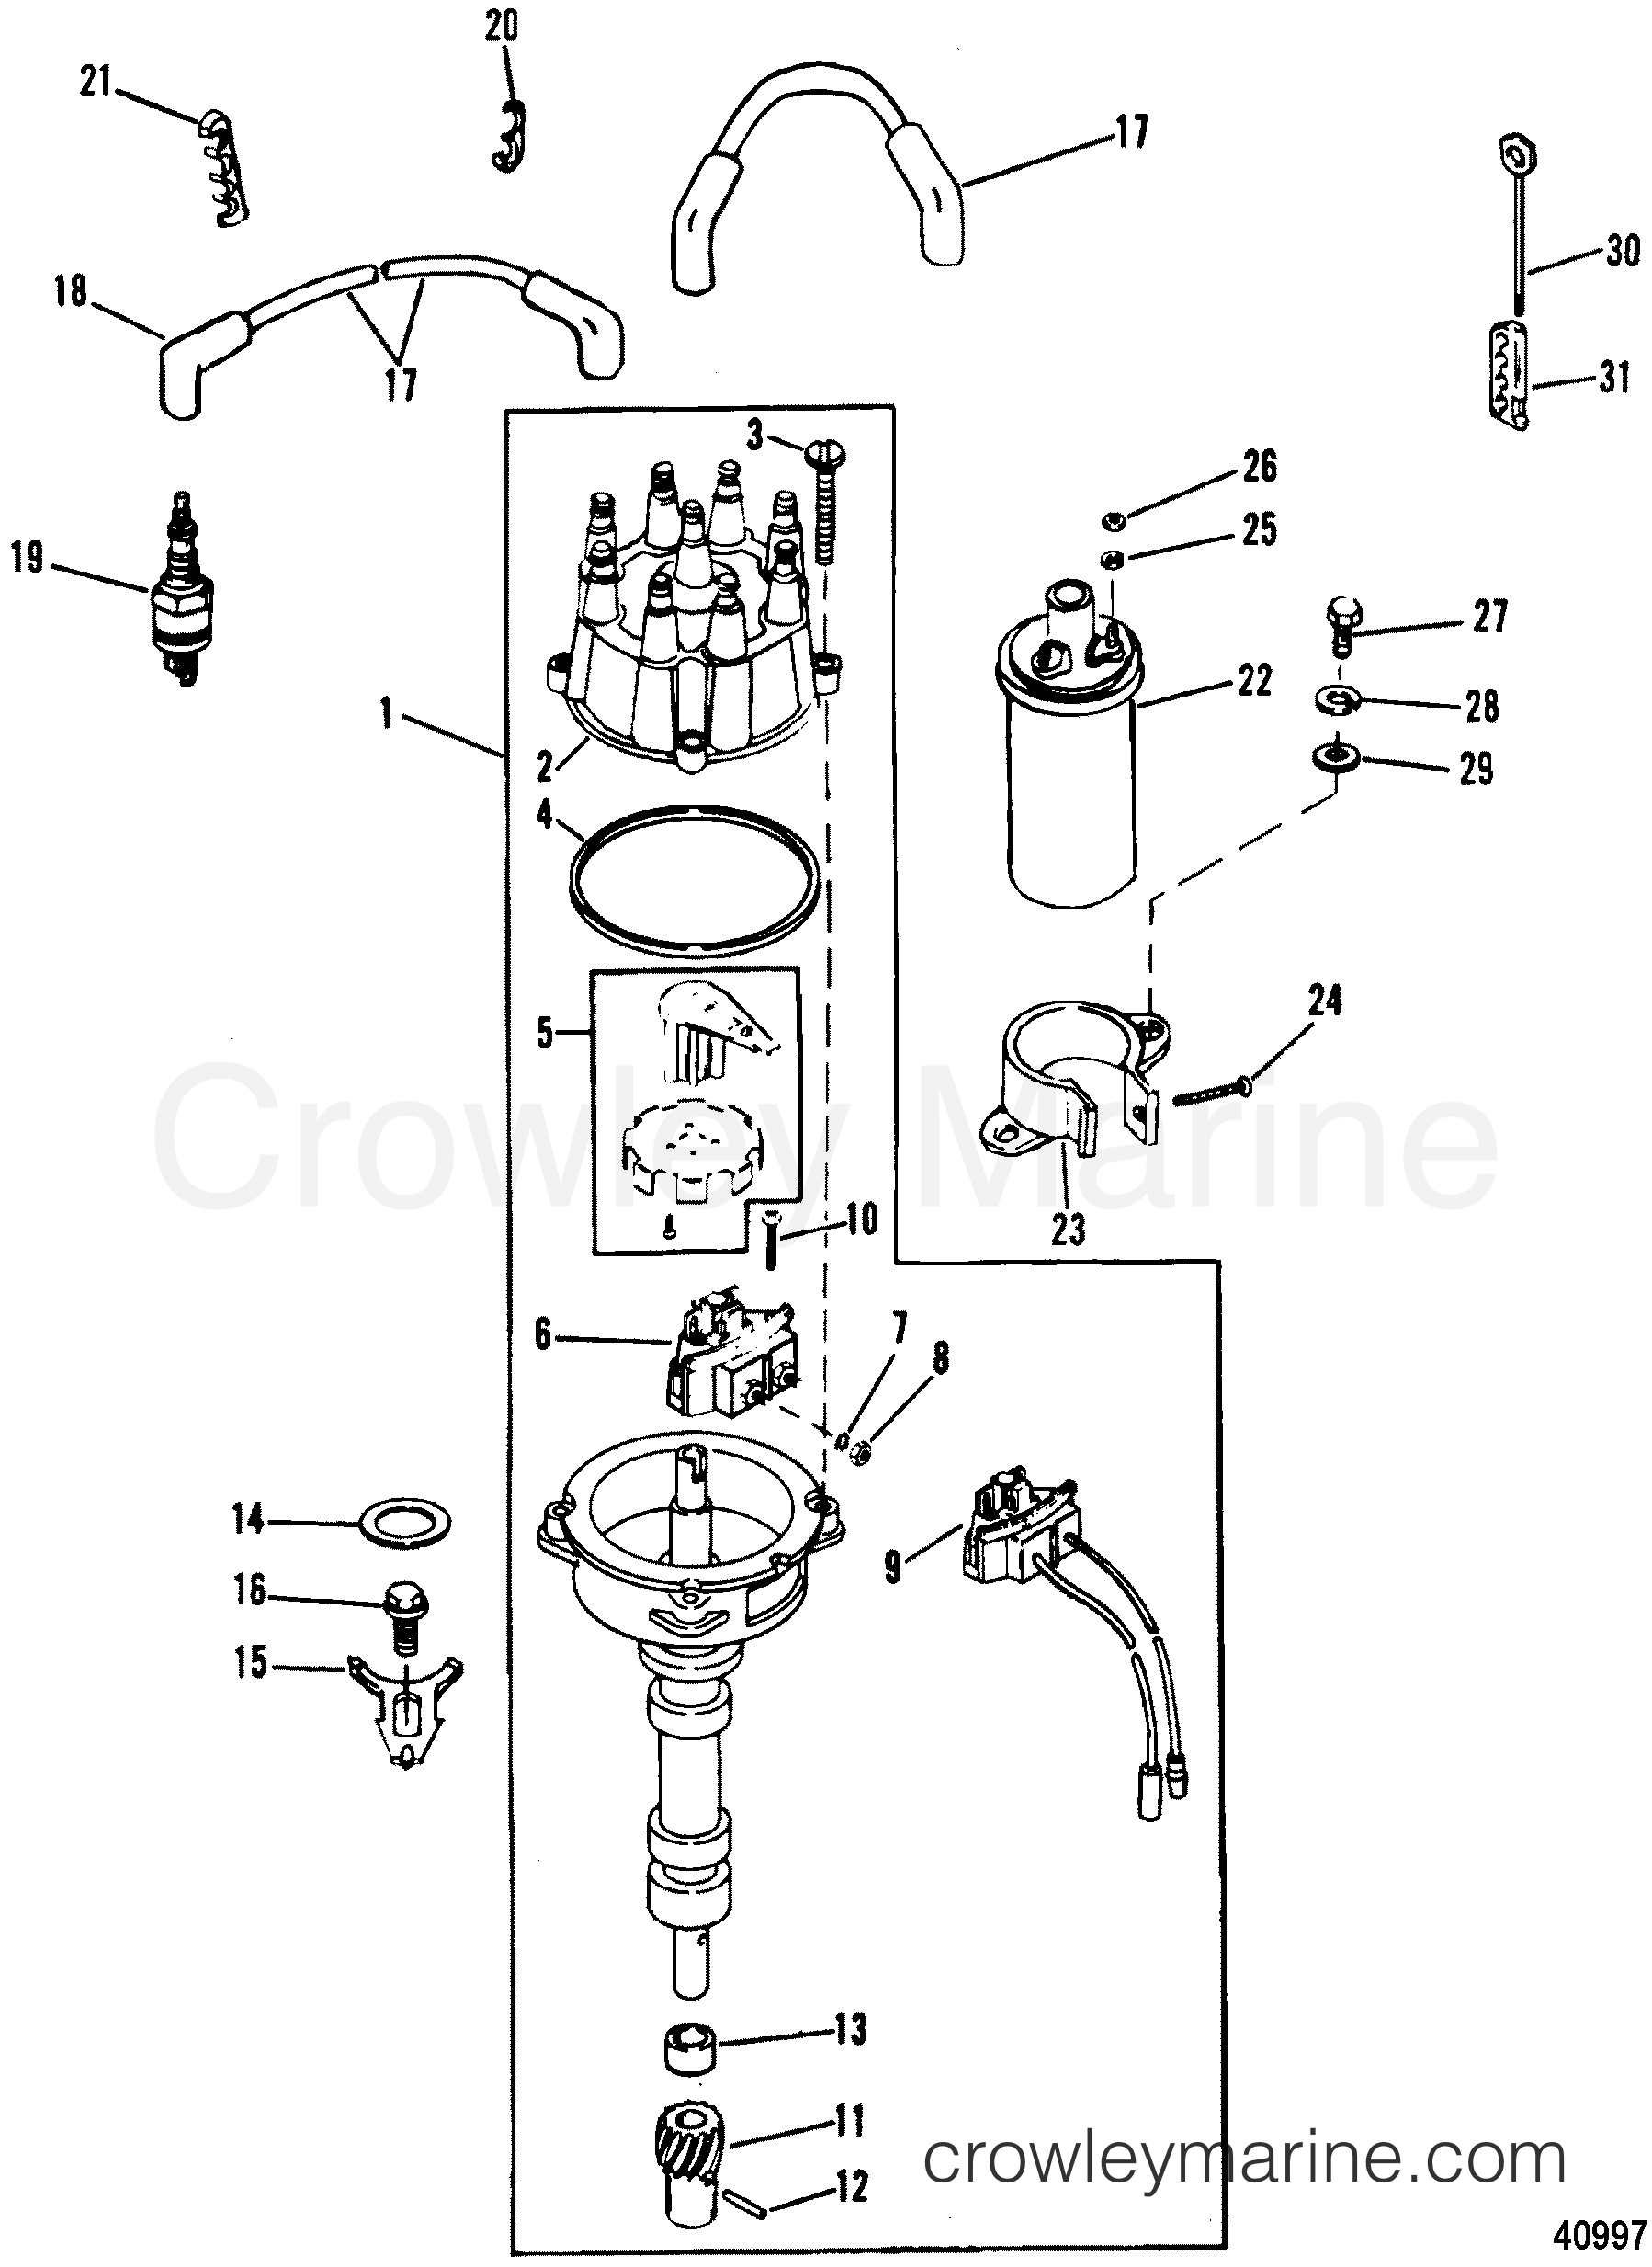 mercruiser ignition wiring diagram Download-mercruiser 5 7 wiring diagram Collection 1988 Mercury Inboard Engine 5 7L [SKI] AS 13-l